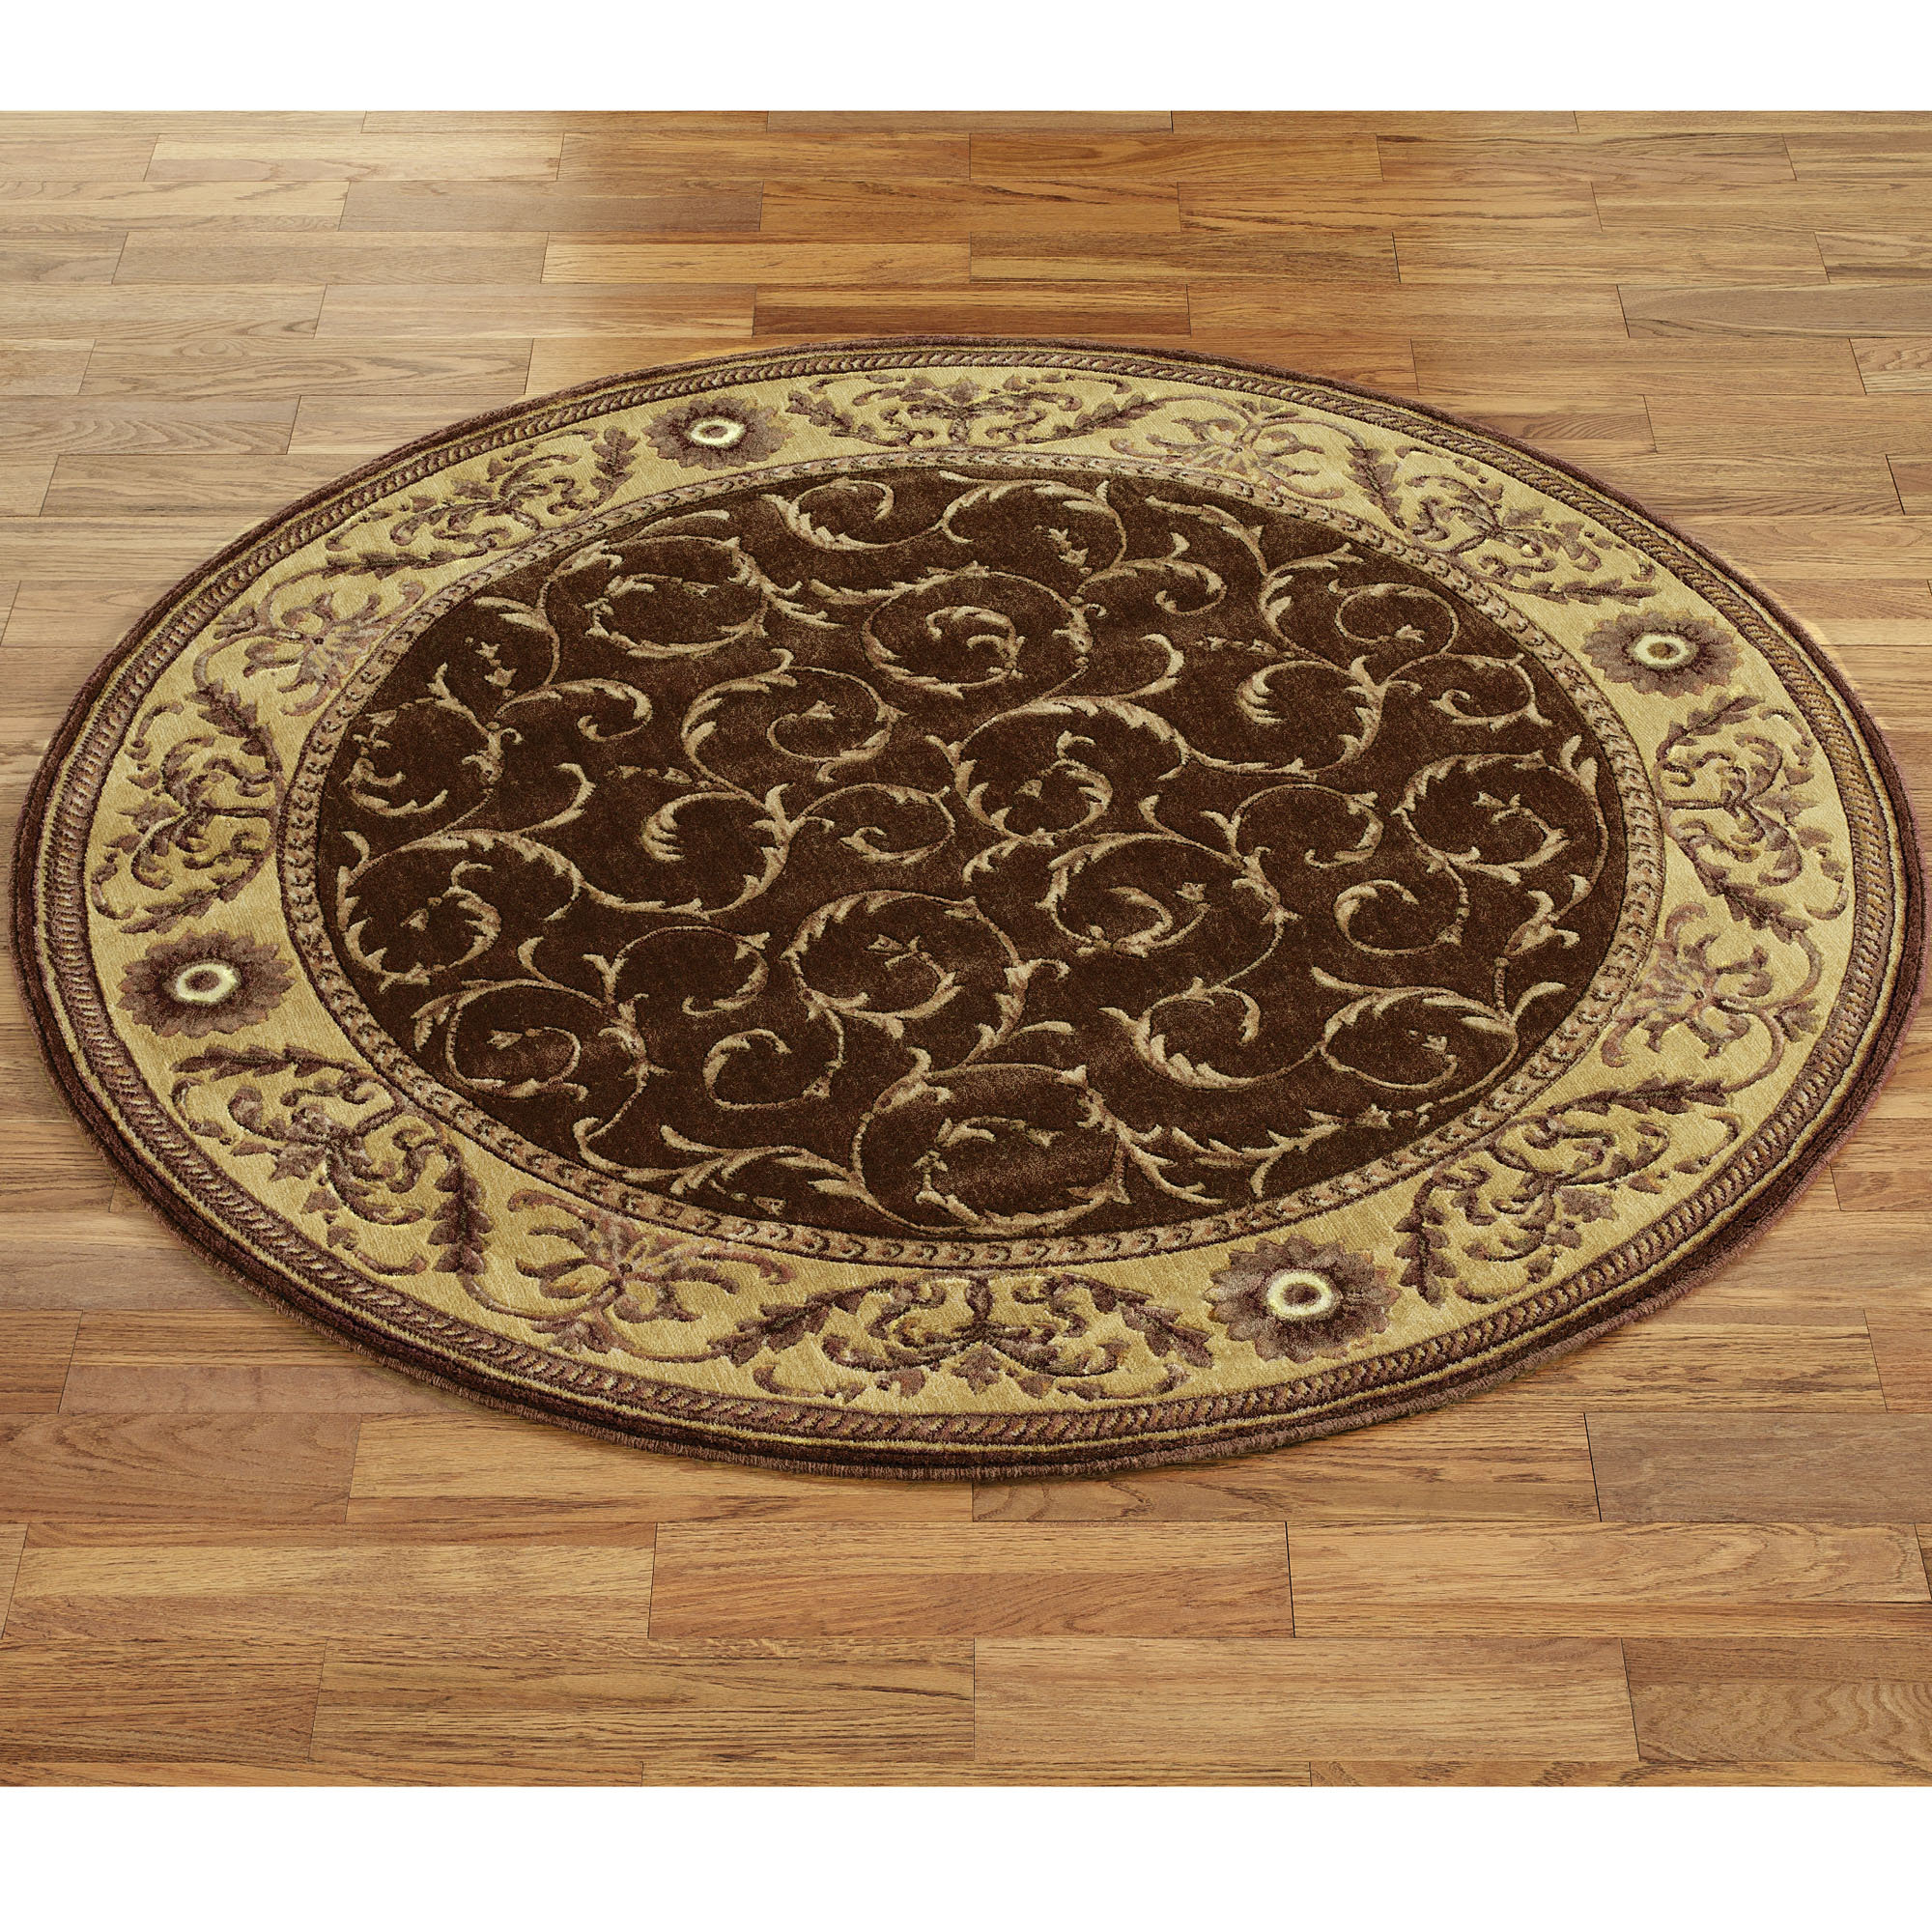 Master Great 6 Ft Round Rug Kitchen Rugs 6ft Home 6 foot round rug